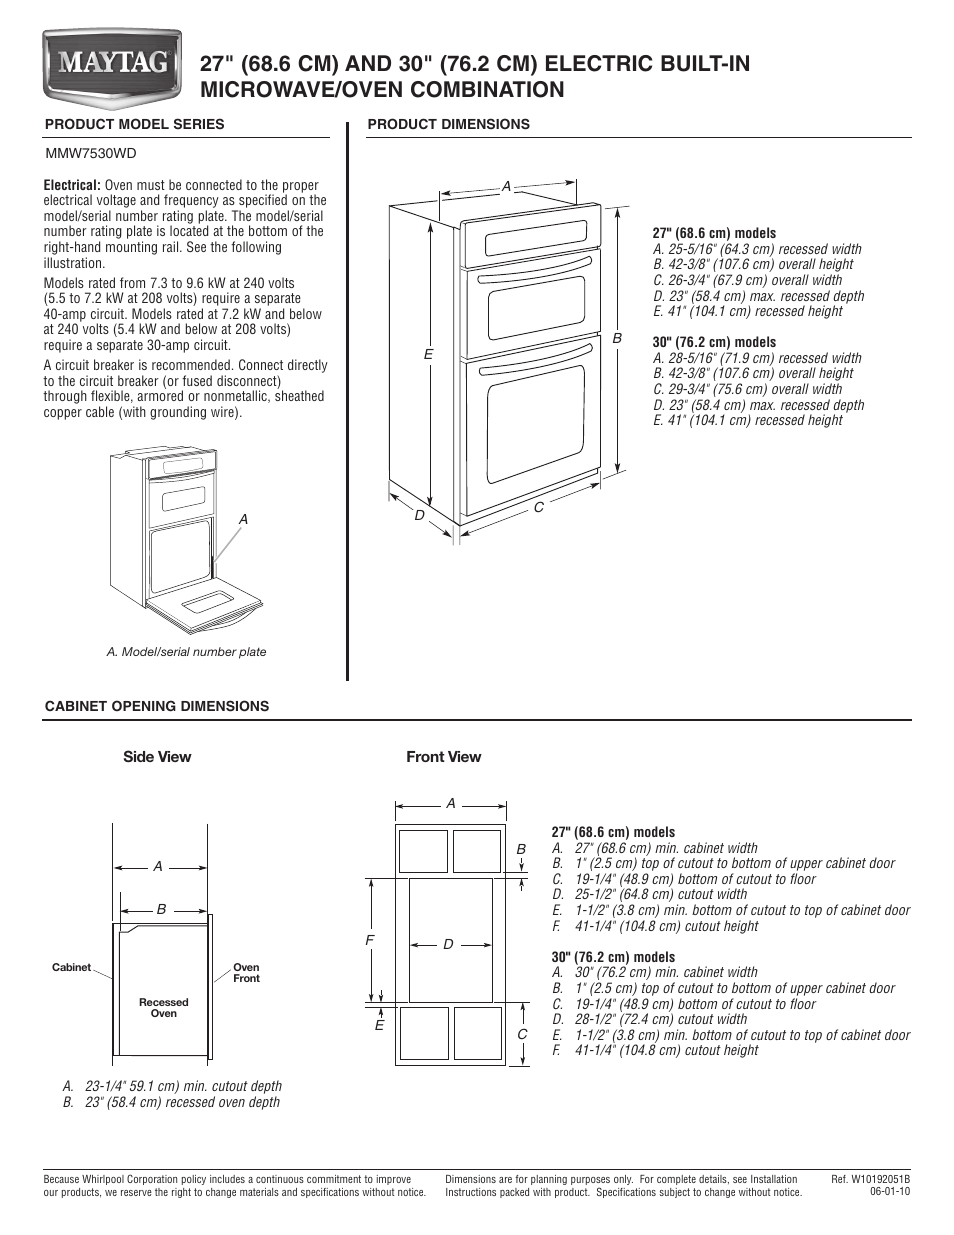 Maytag Mmw7530wds Dimension Guide User Manual 1 Page Also For Microwave Wiring Diagram Mmw7530wdw